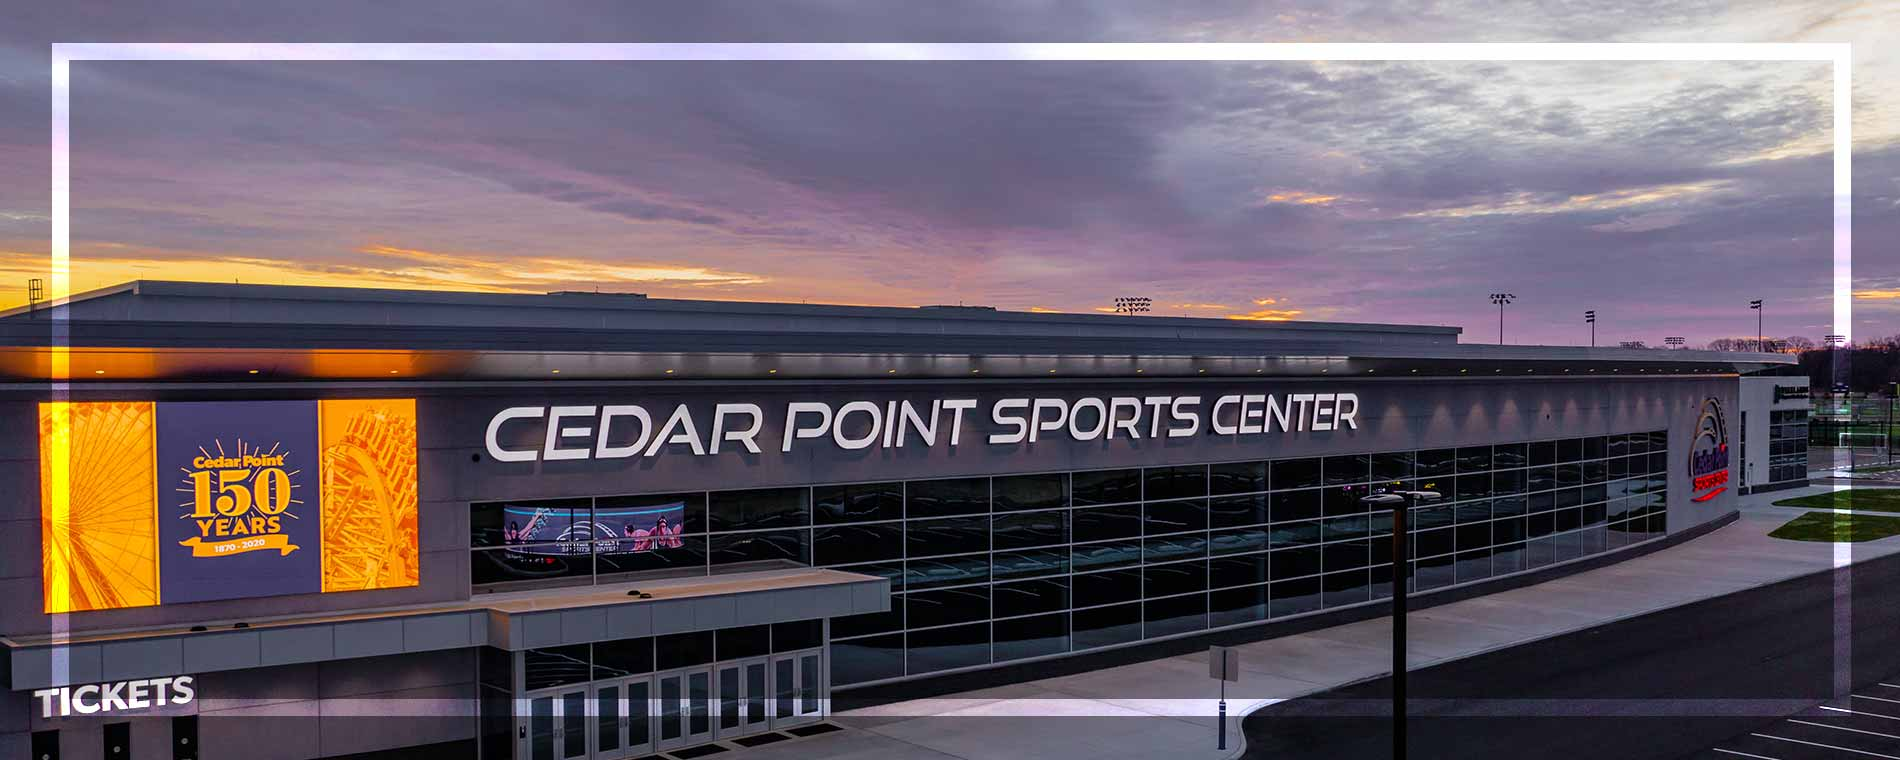 Cedar Point Sports Center Exterior Sunset 3